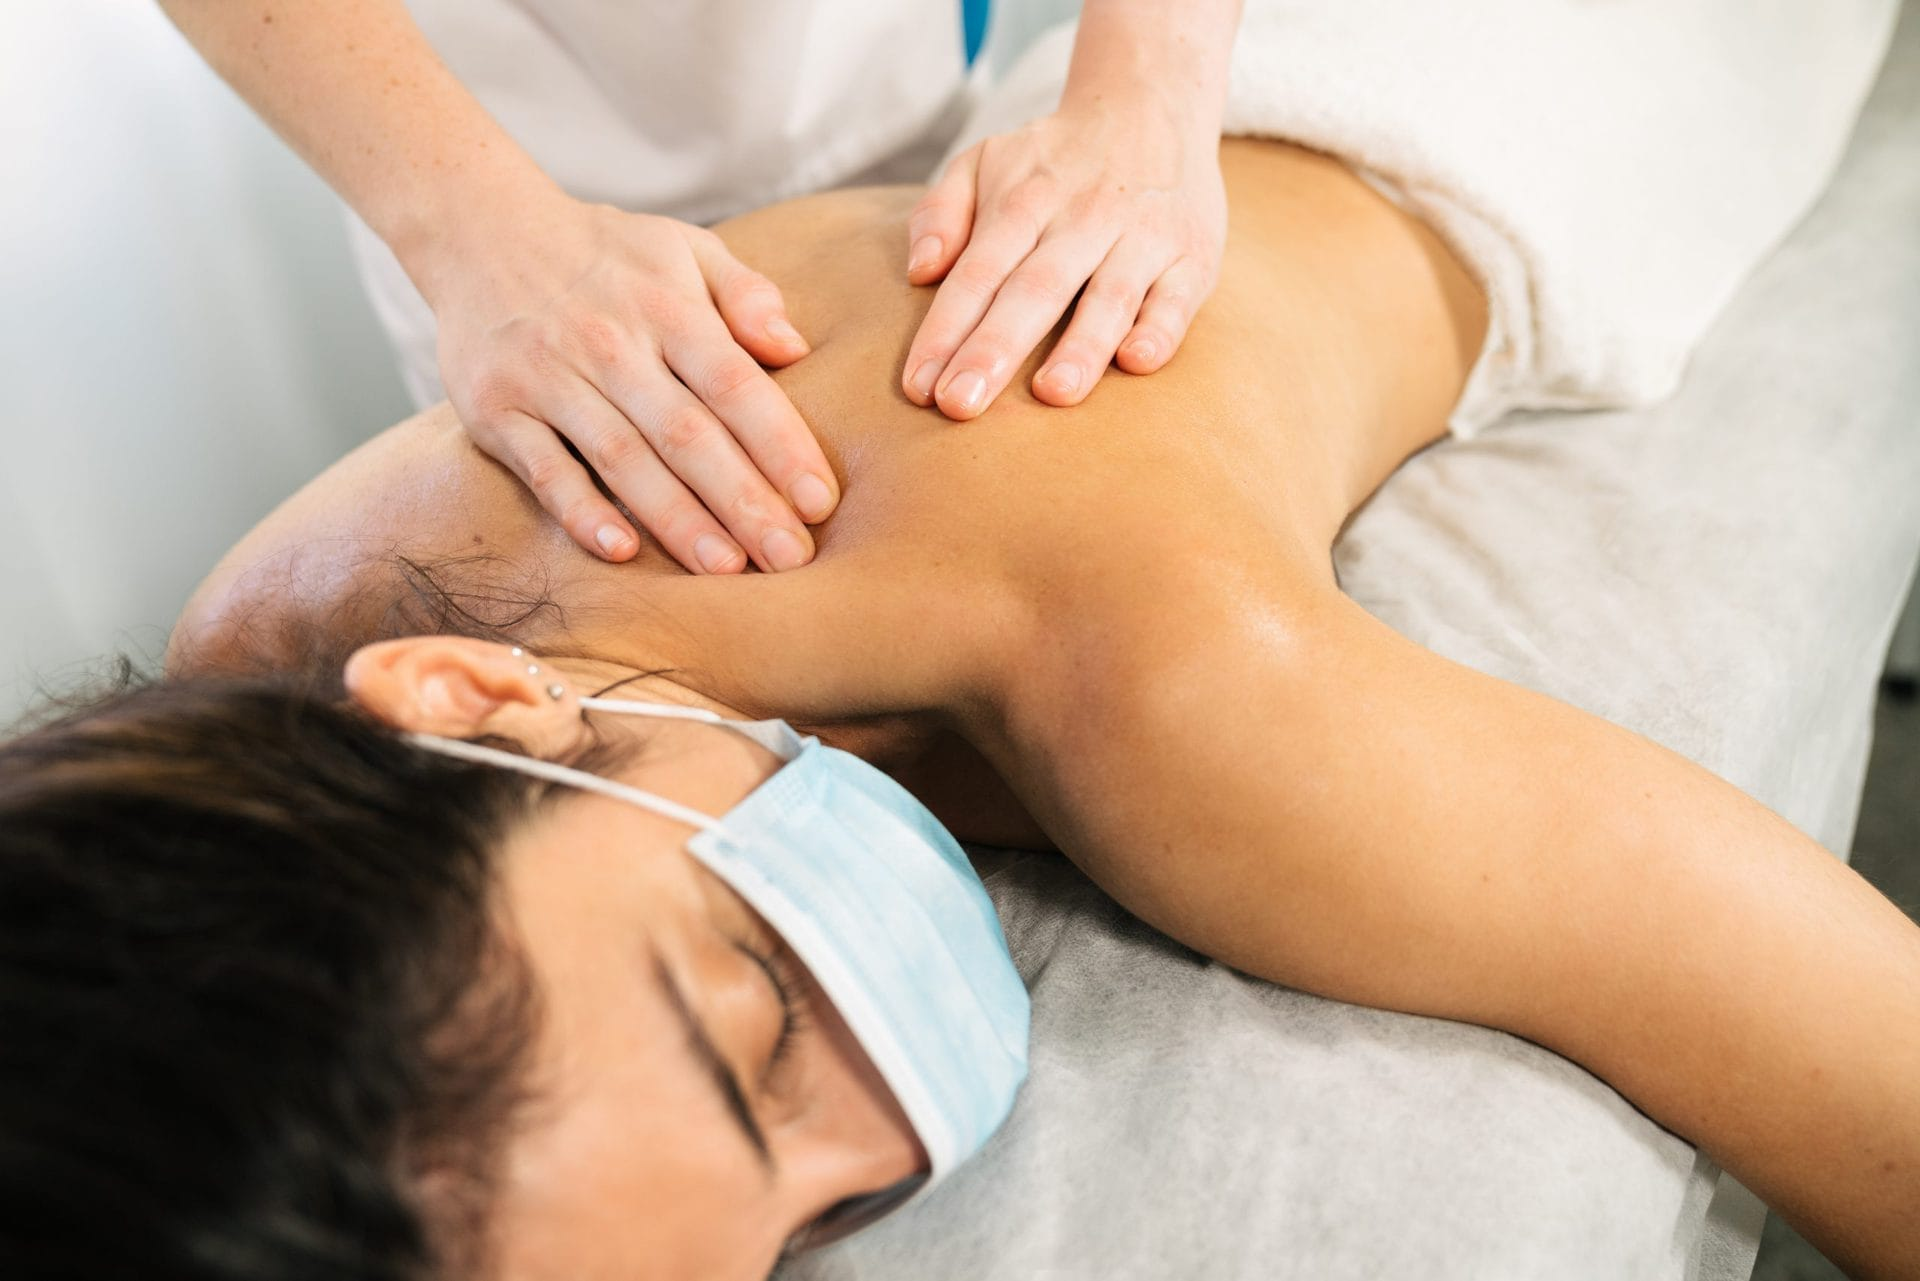 Massage Therapy During The COVID Pandemic